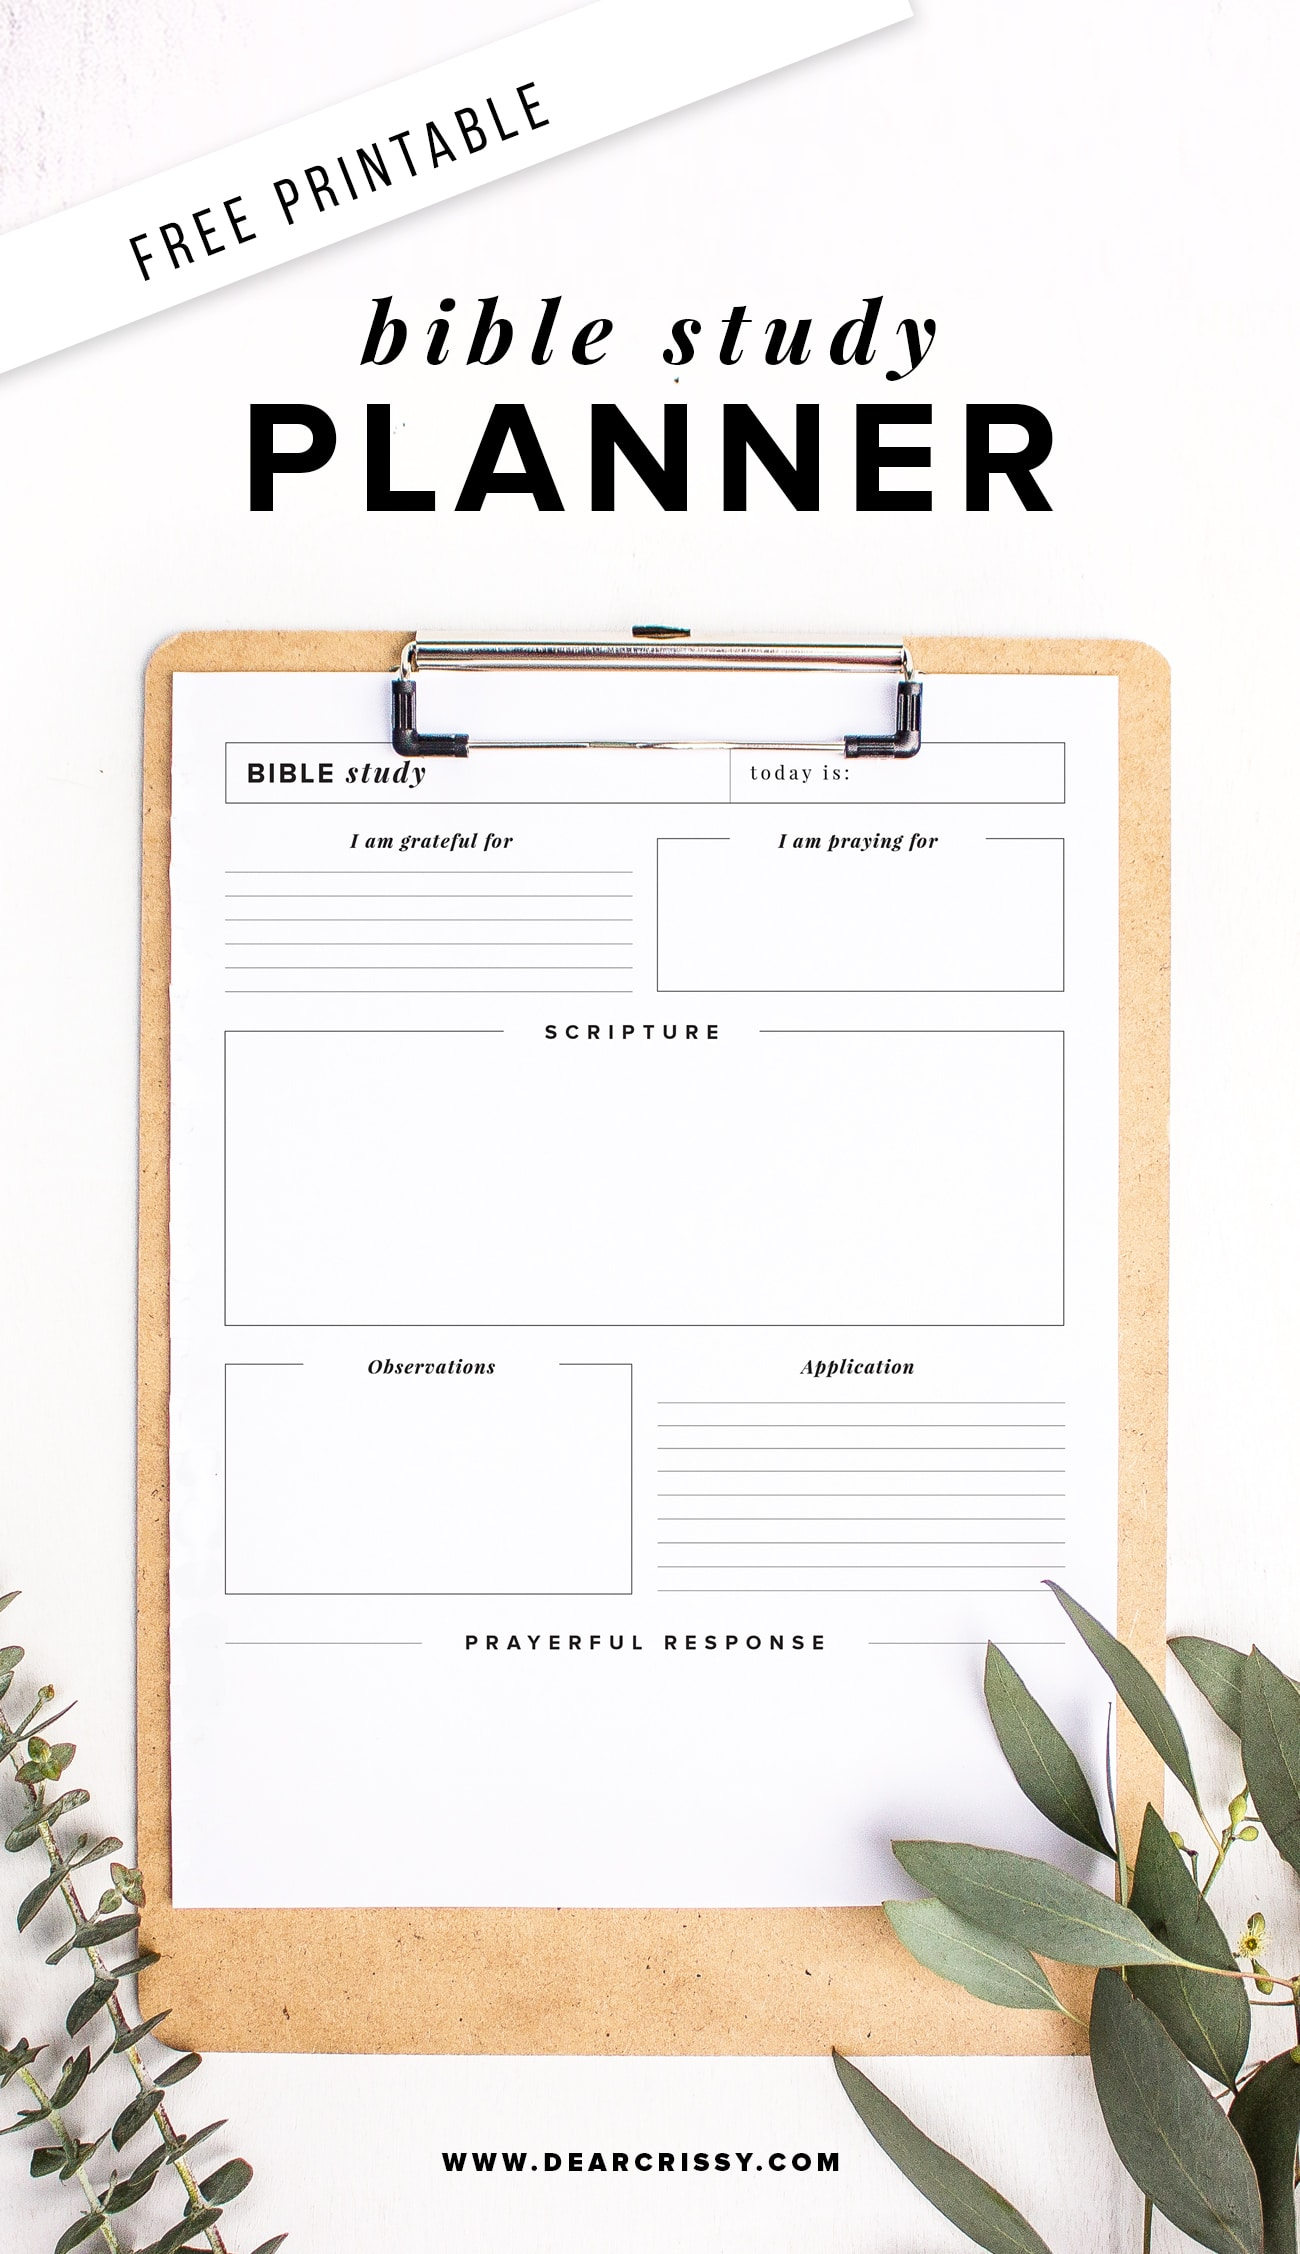 Free Printable Bible Study Planner - Soap Method Bible Study Worksheet! - Free Printable Bible Study Guides